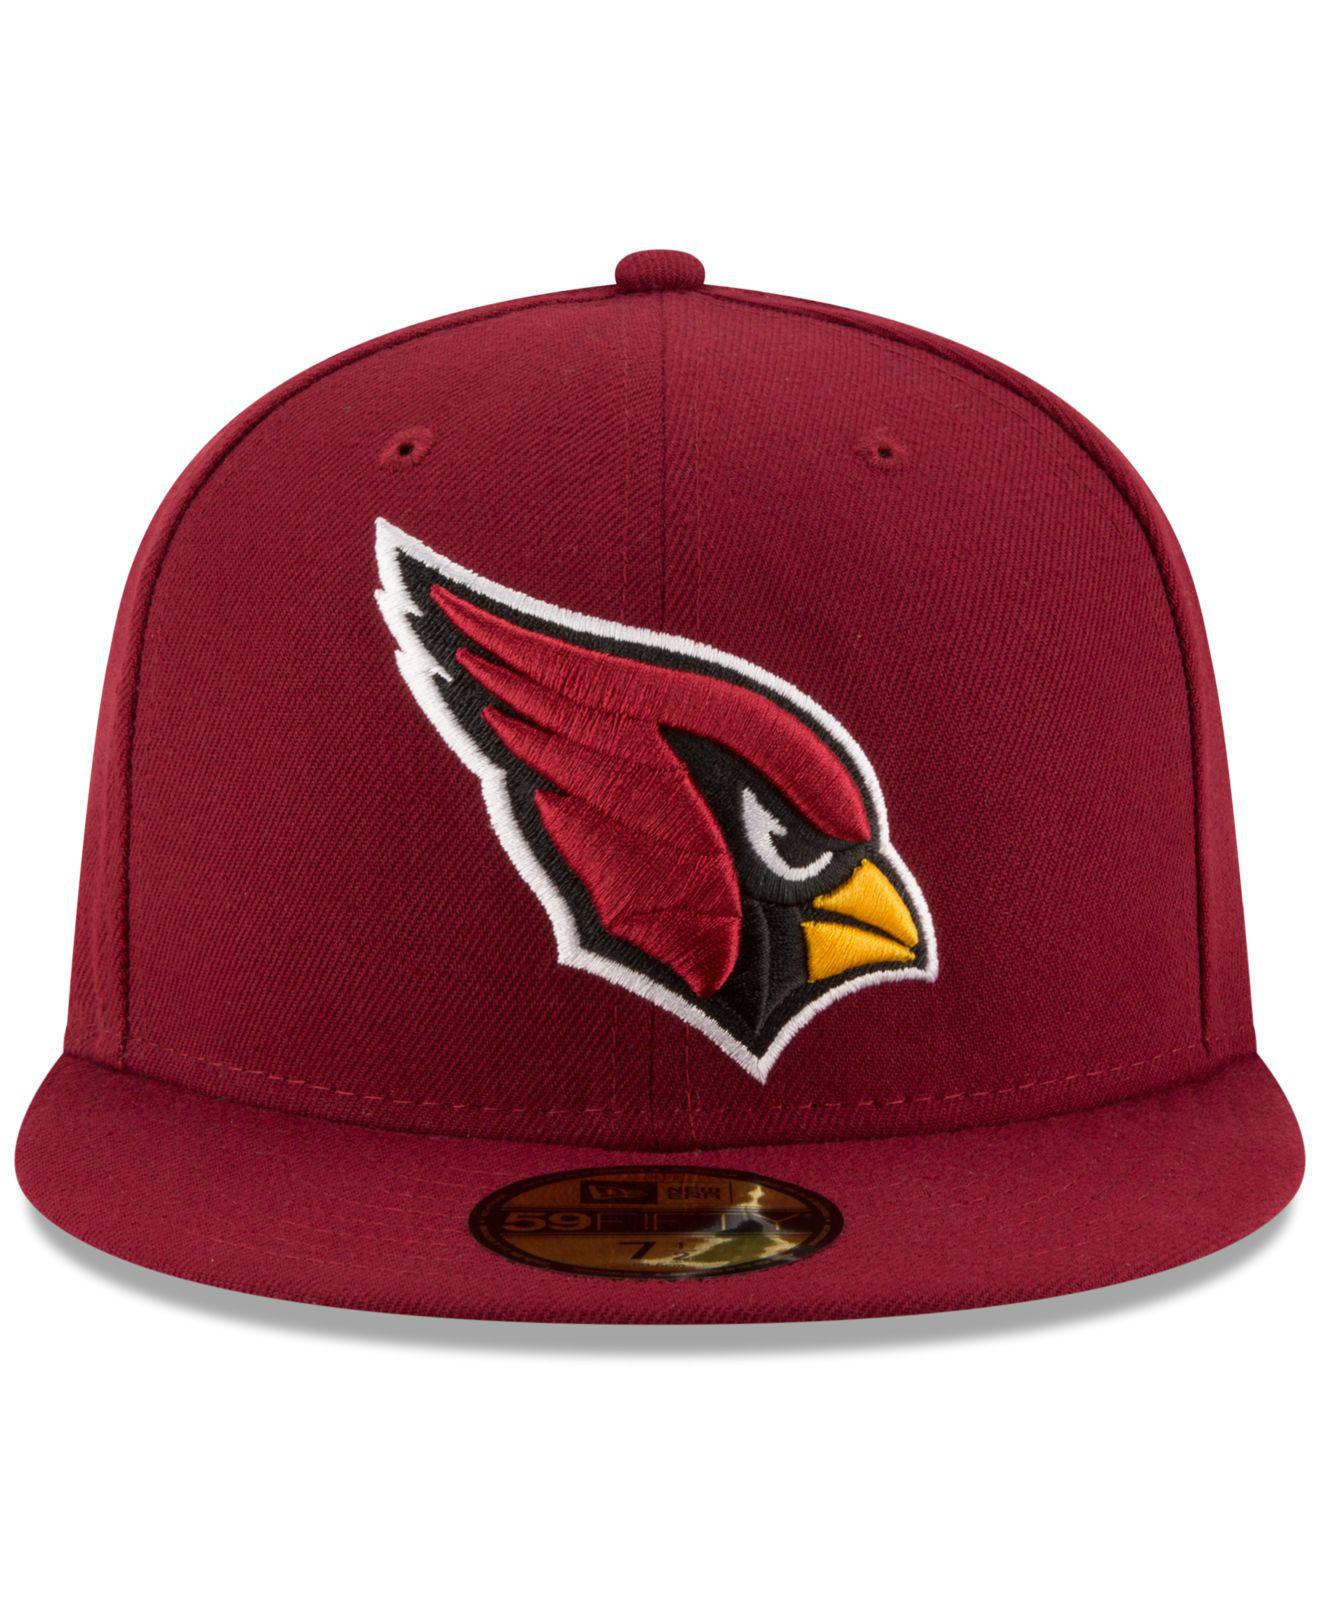 save off 45712 496c1 KTZ Arizona Cardinals Team Basic 59fifty Cap in Red for Men - Save 8% - Lyst